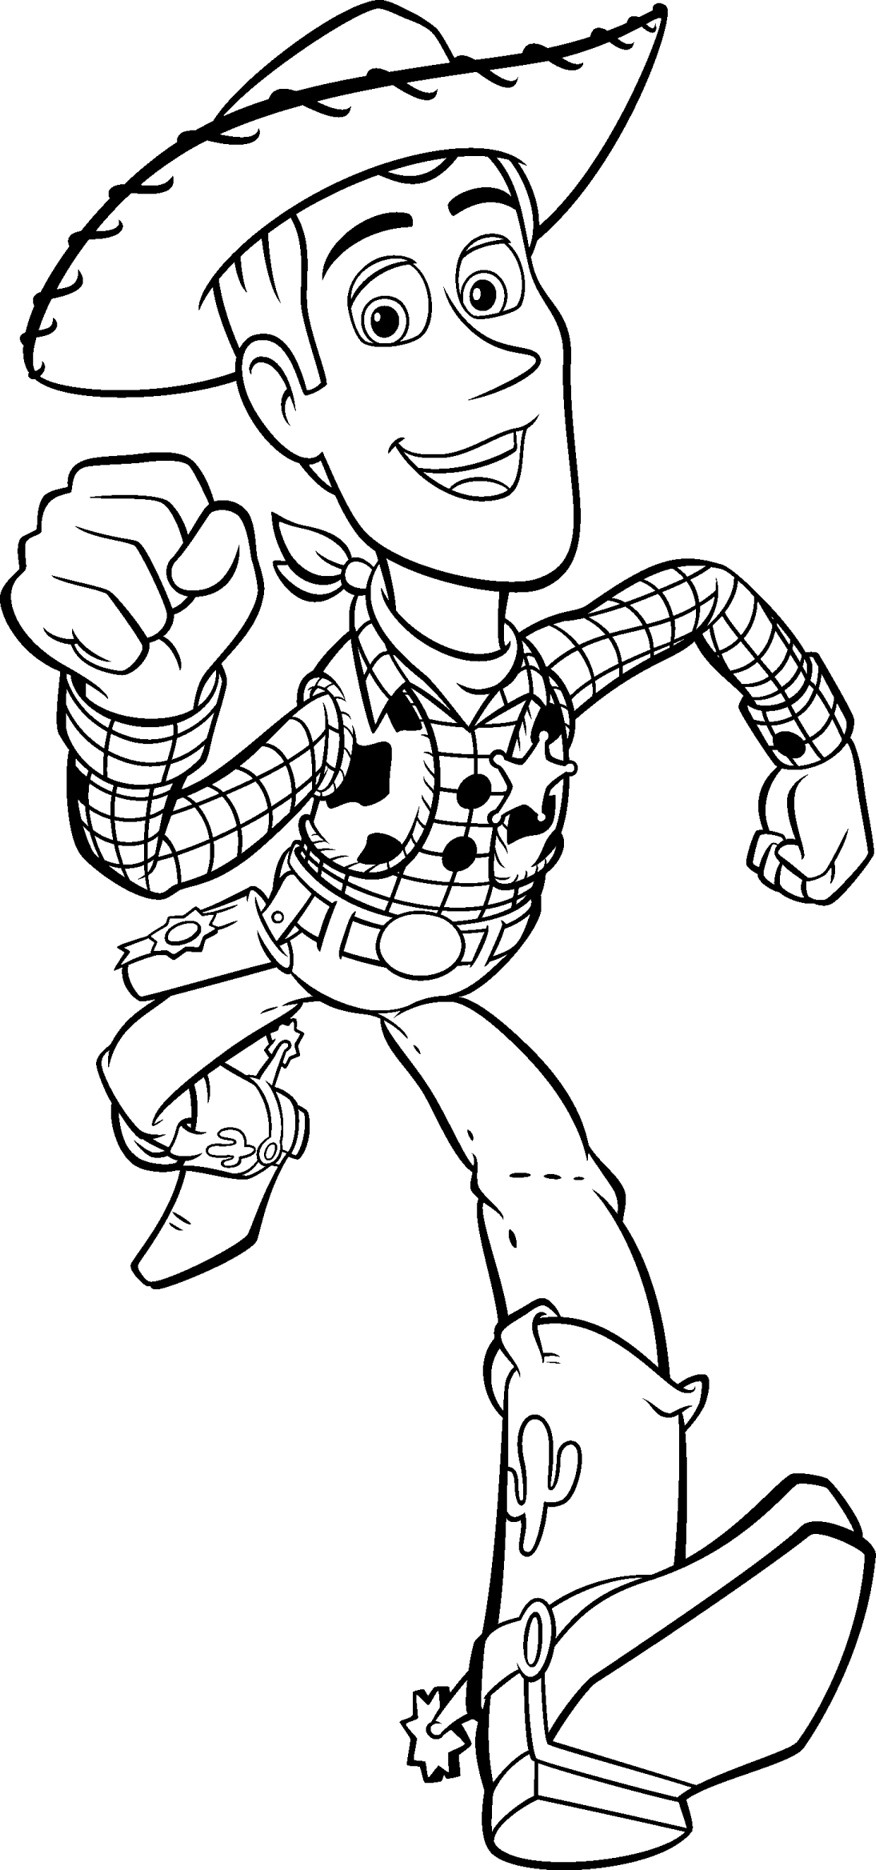 Disney Coloring Books  Free Printable Toy Story Coloring Pages For Kids